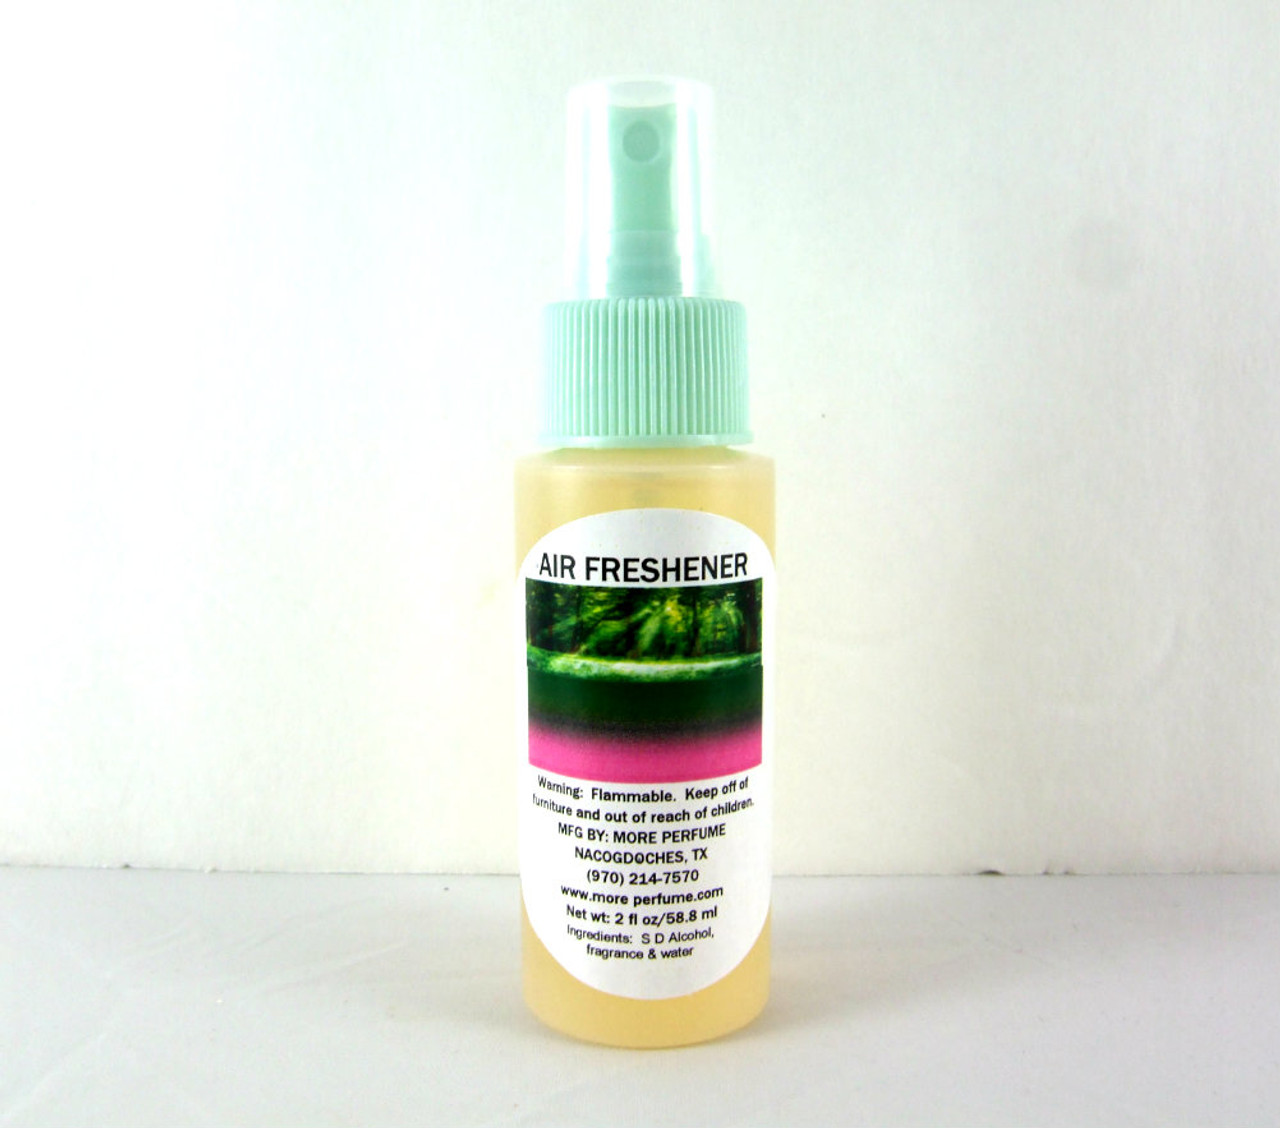 Bathroom Air Freshener Lemon Pine Concentrated Air Freshener New Fresh Clean Perfect For The Bathroom 2 Oz Spray